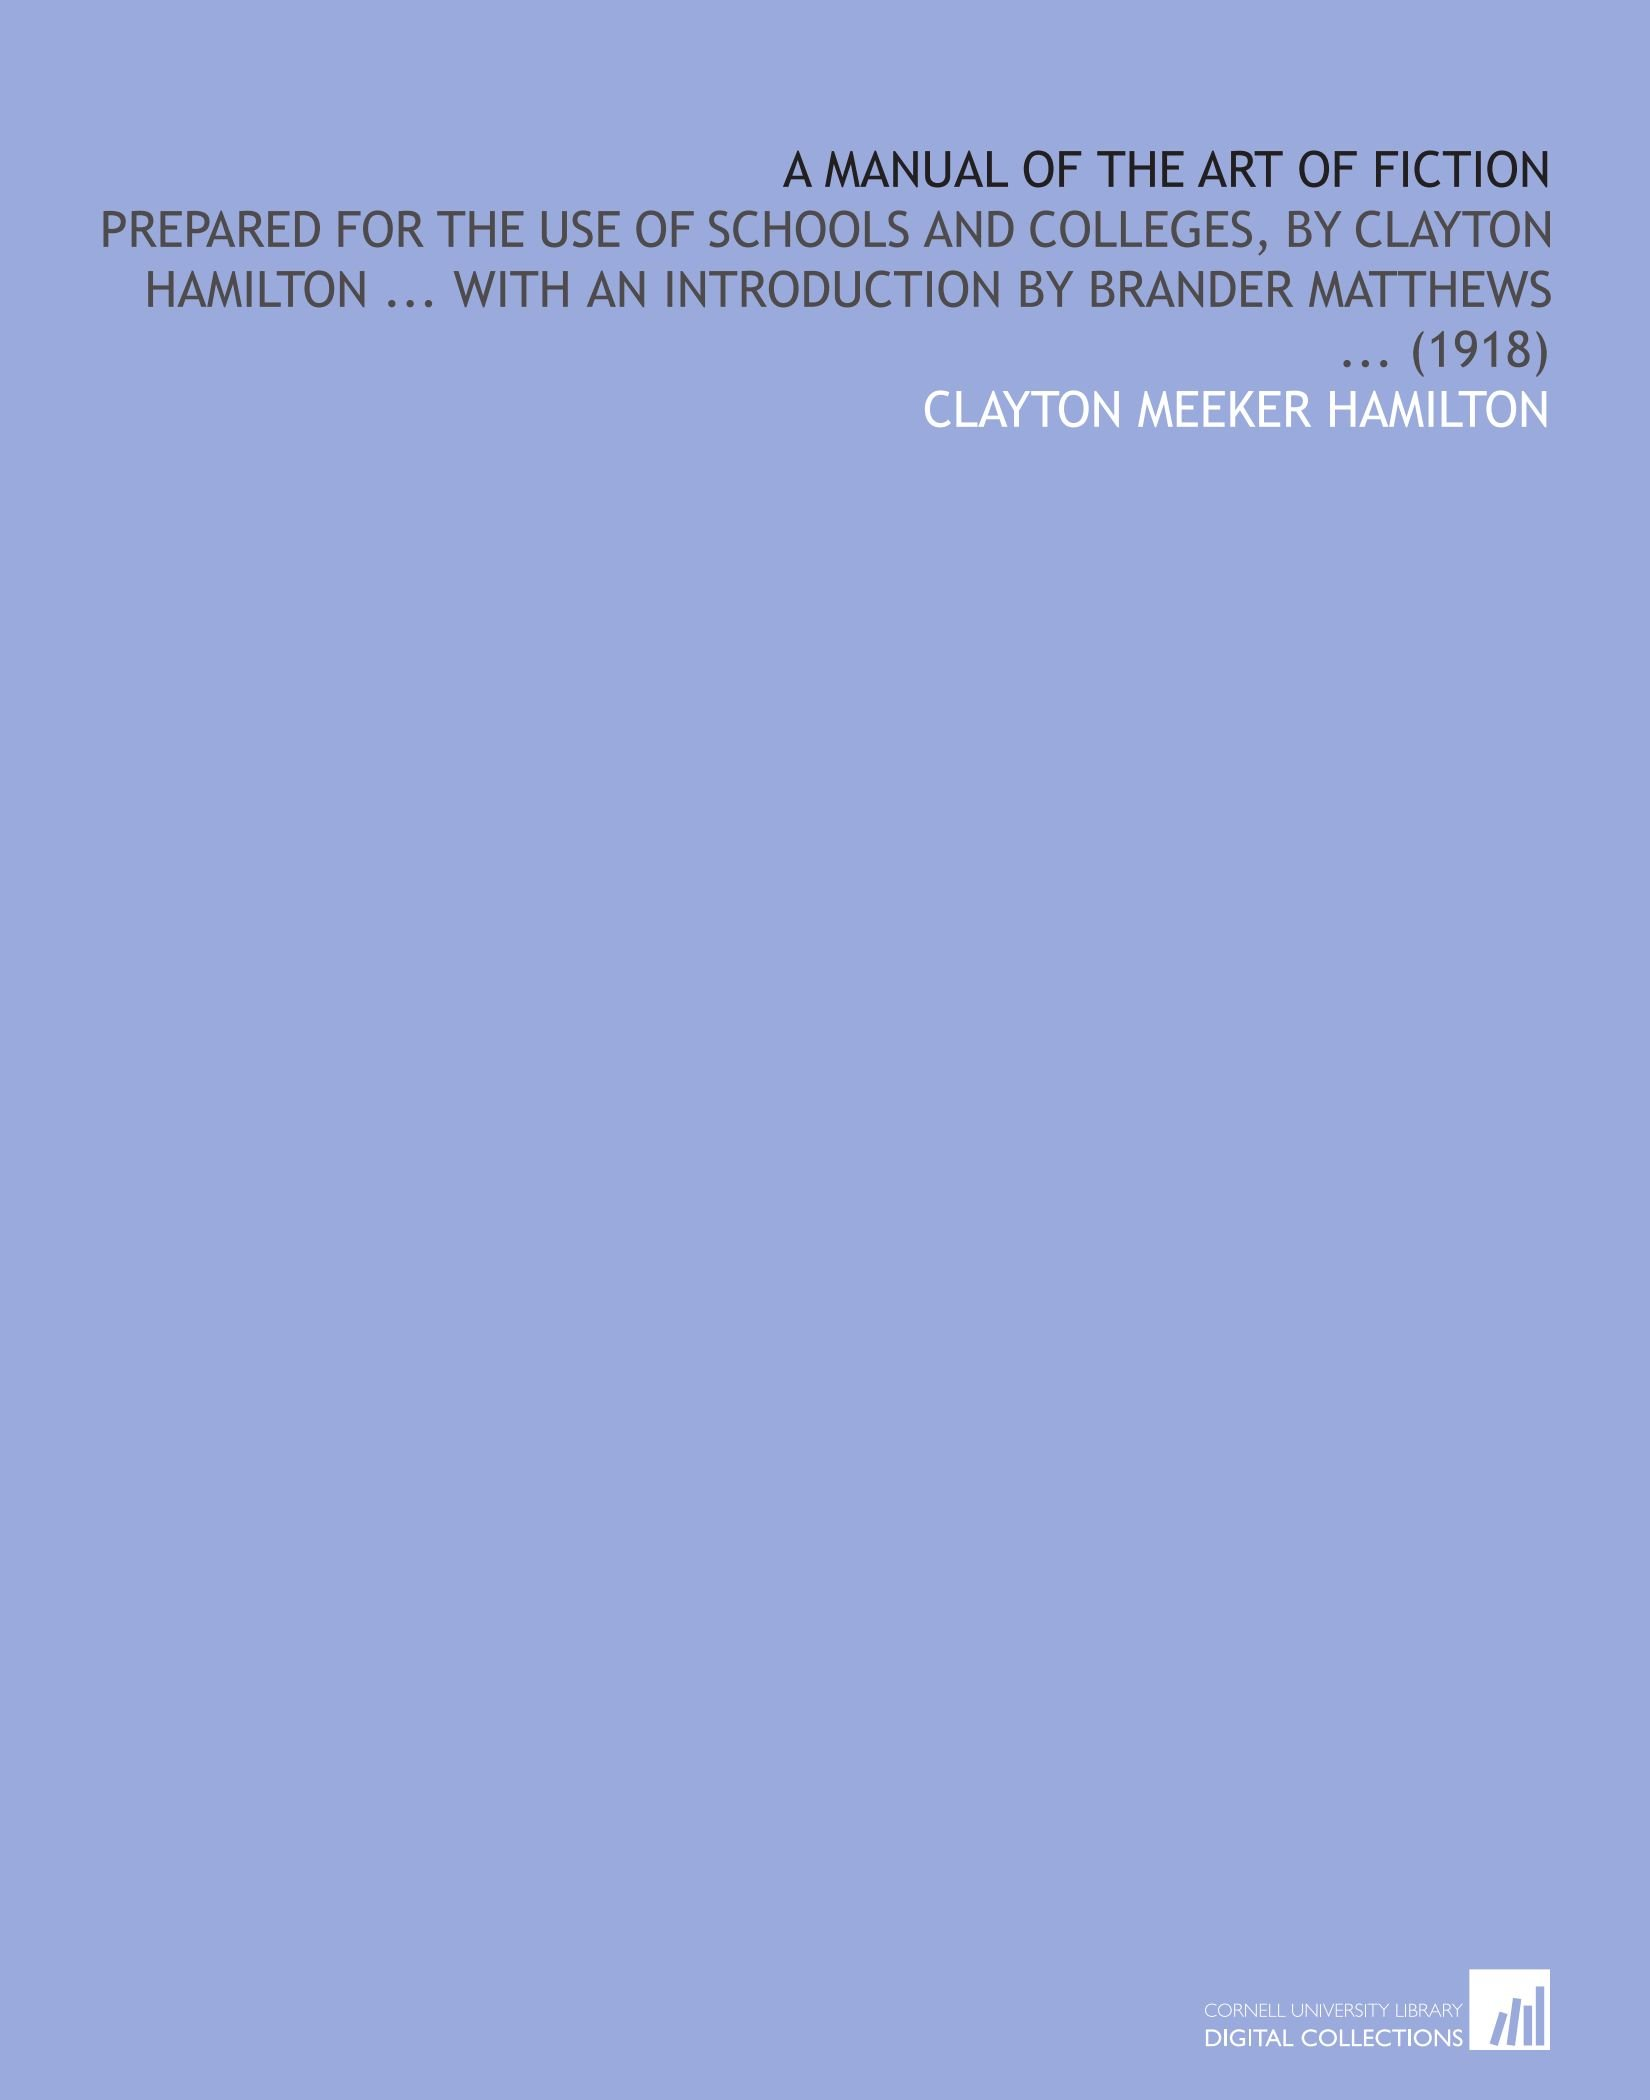 A Manual of the Art of Fiction: Prepared for the Use of Schools and Colleges, by Clayton Hamilton ... With an Introduction by Brander Matthews ... (1918) ebook